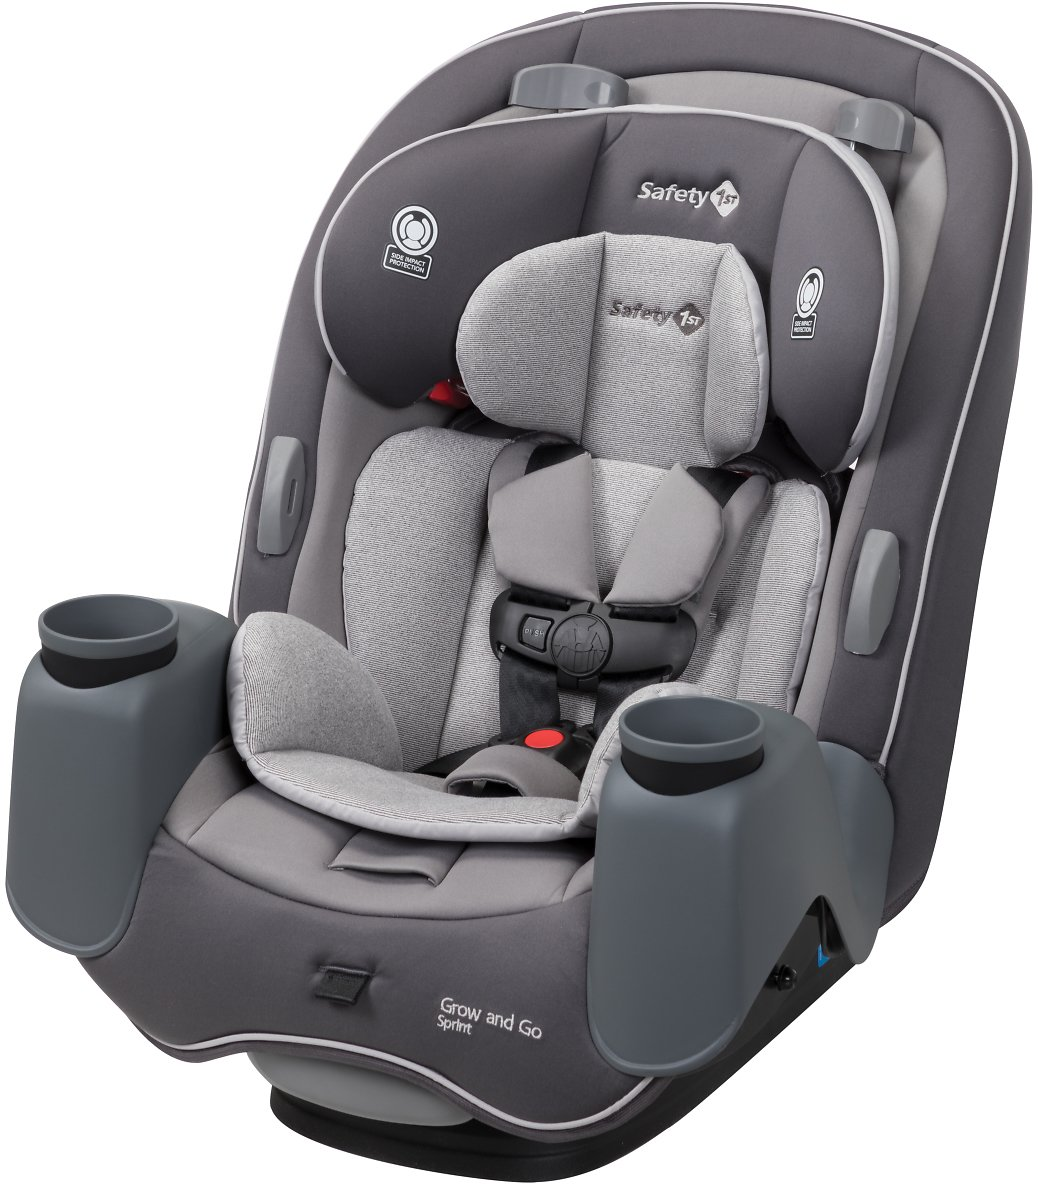 Grow and Go Sprint 3-in-1 Convertible Car Seat (4 Colors)